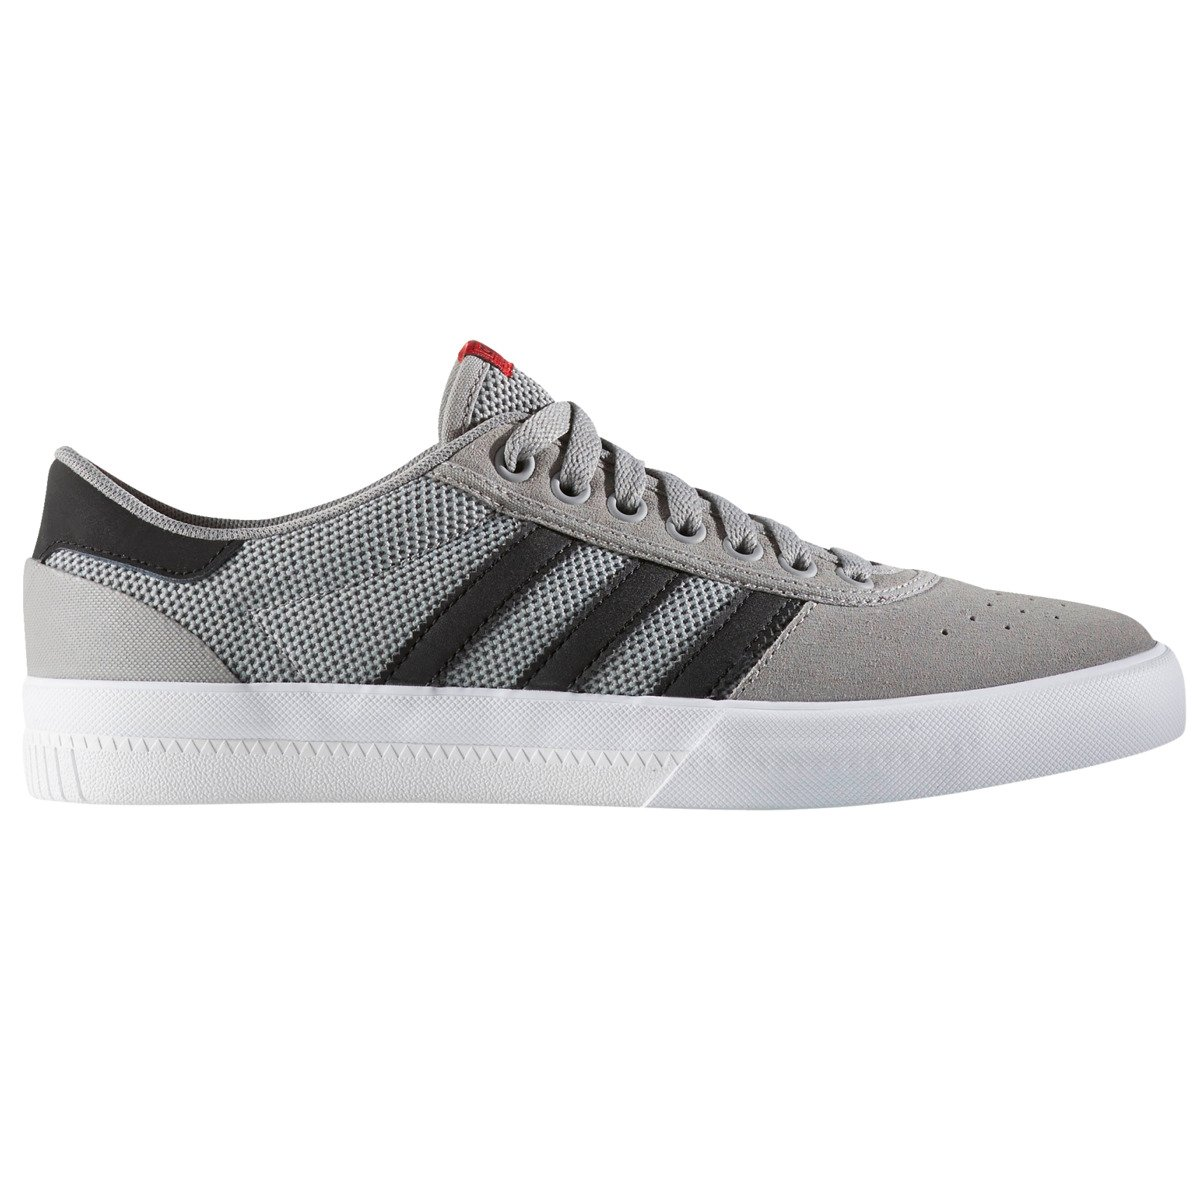 efdb4370fe5a1 shoes adidas skateboarding lucas premiere adv white | Shoes \ Adidas  Skateboarding SALE \ Sale 50% -70% \ Shoes Brands \ Adidas Originals Buty \  Adidas ...